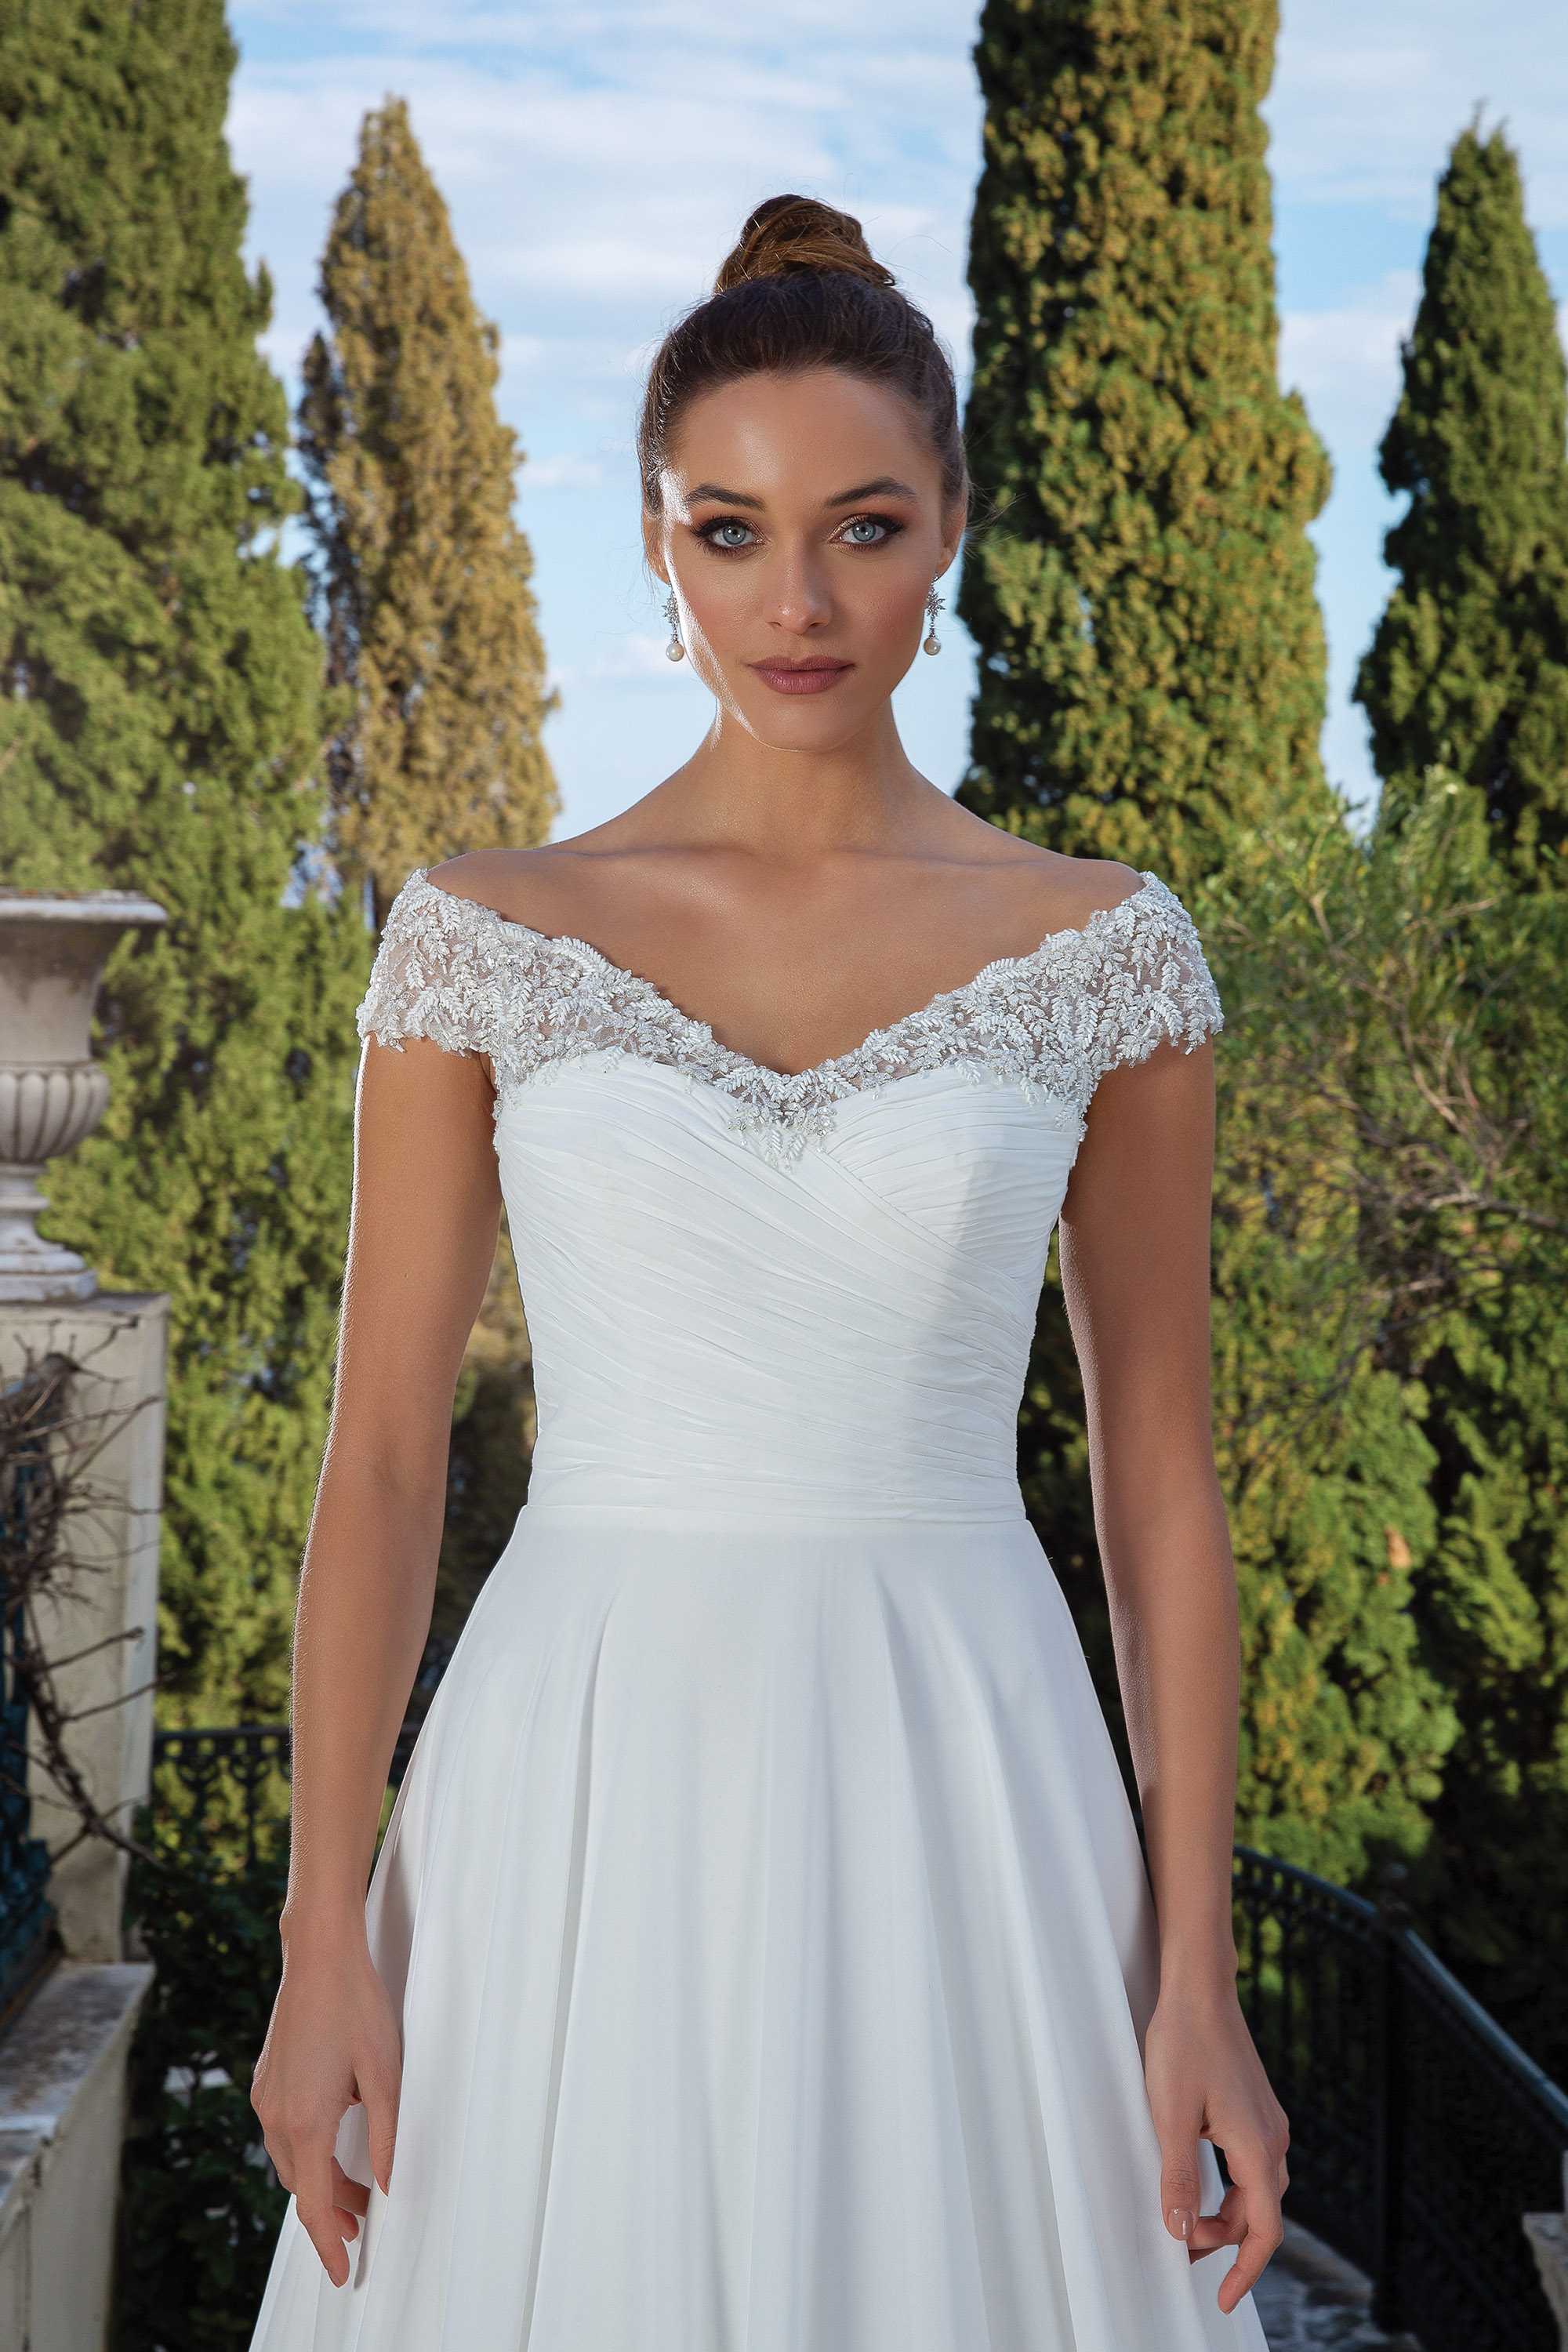 A-line wedding dress with lace sleeves